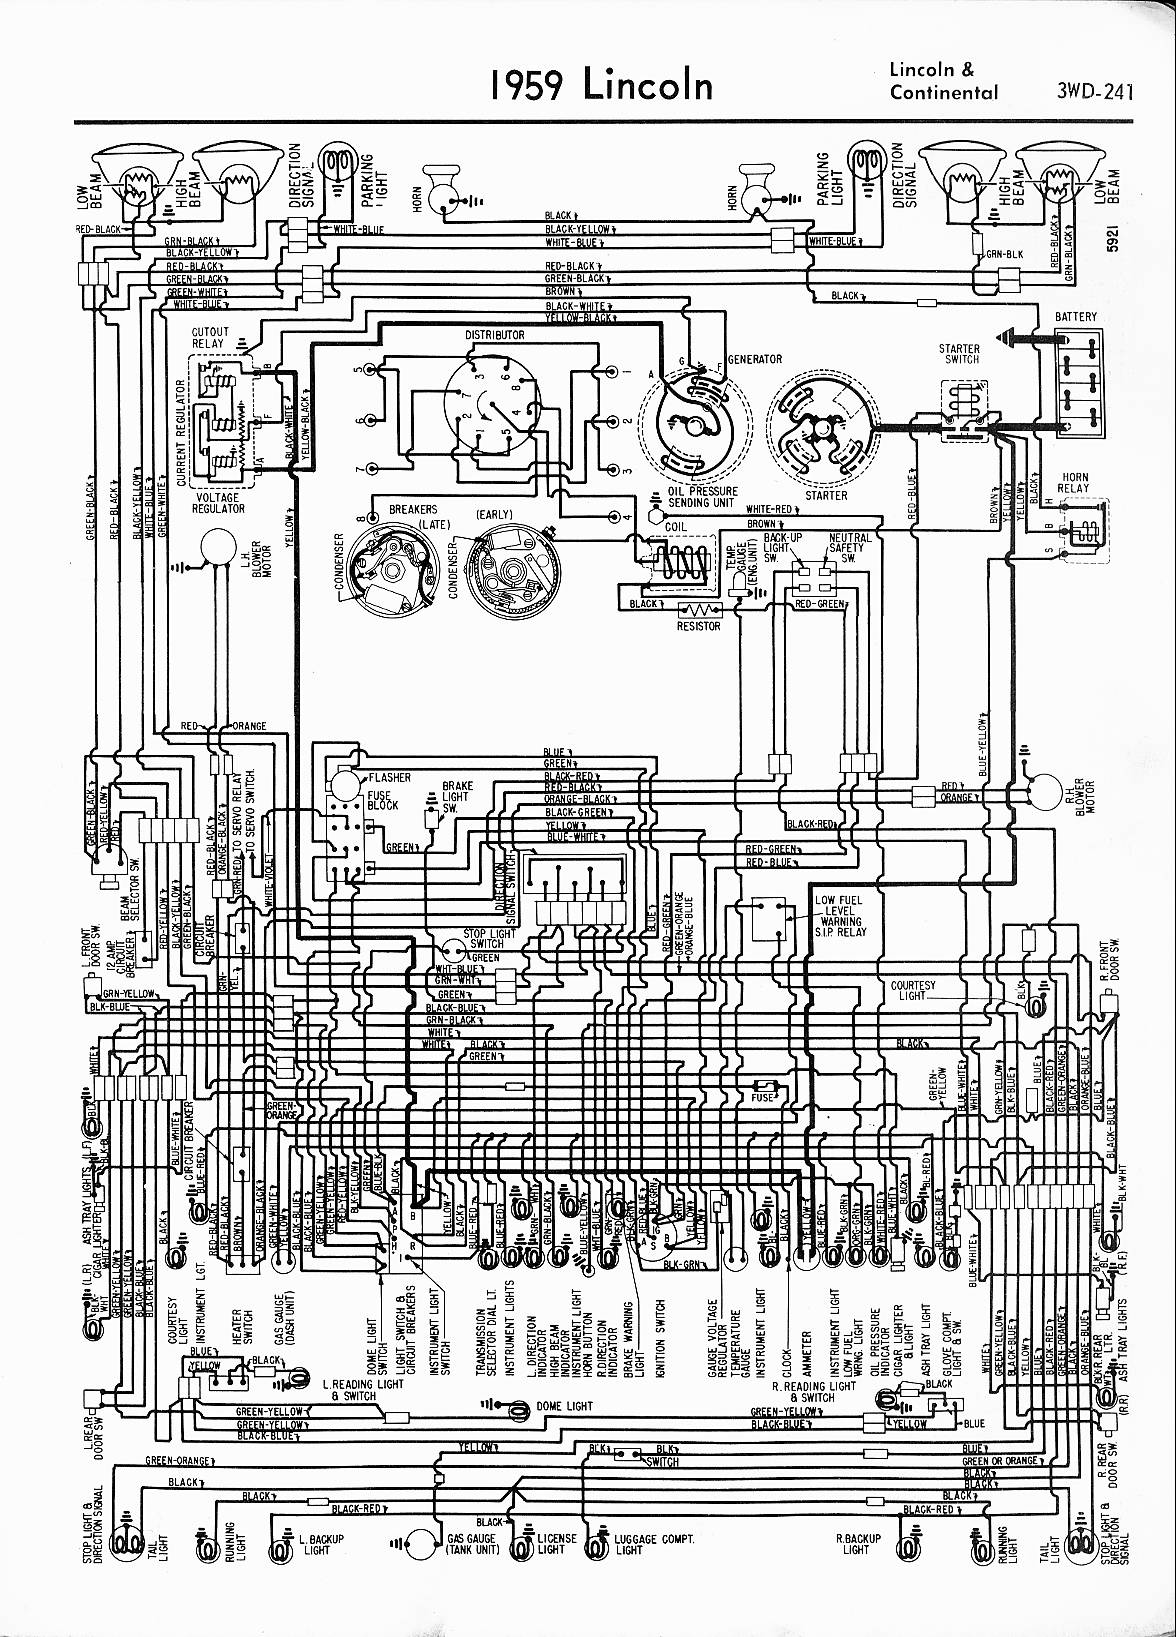 MWireLin_Lin57_z3wd 241z_004 lincoln wiring diagrams 1957 1965 1969 Lincoln Wiring Diagram at reclaimingppi.co